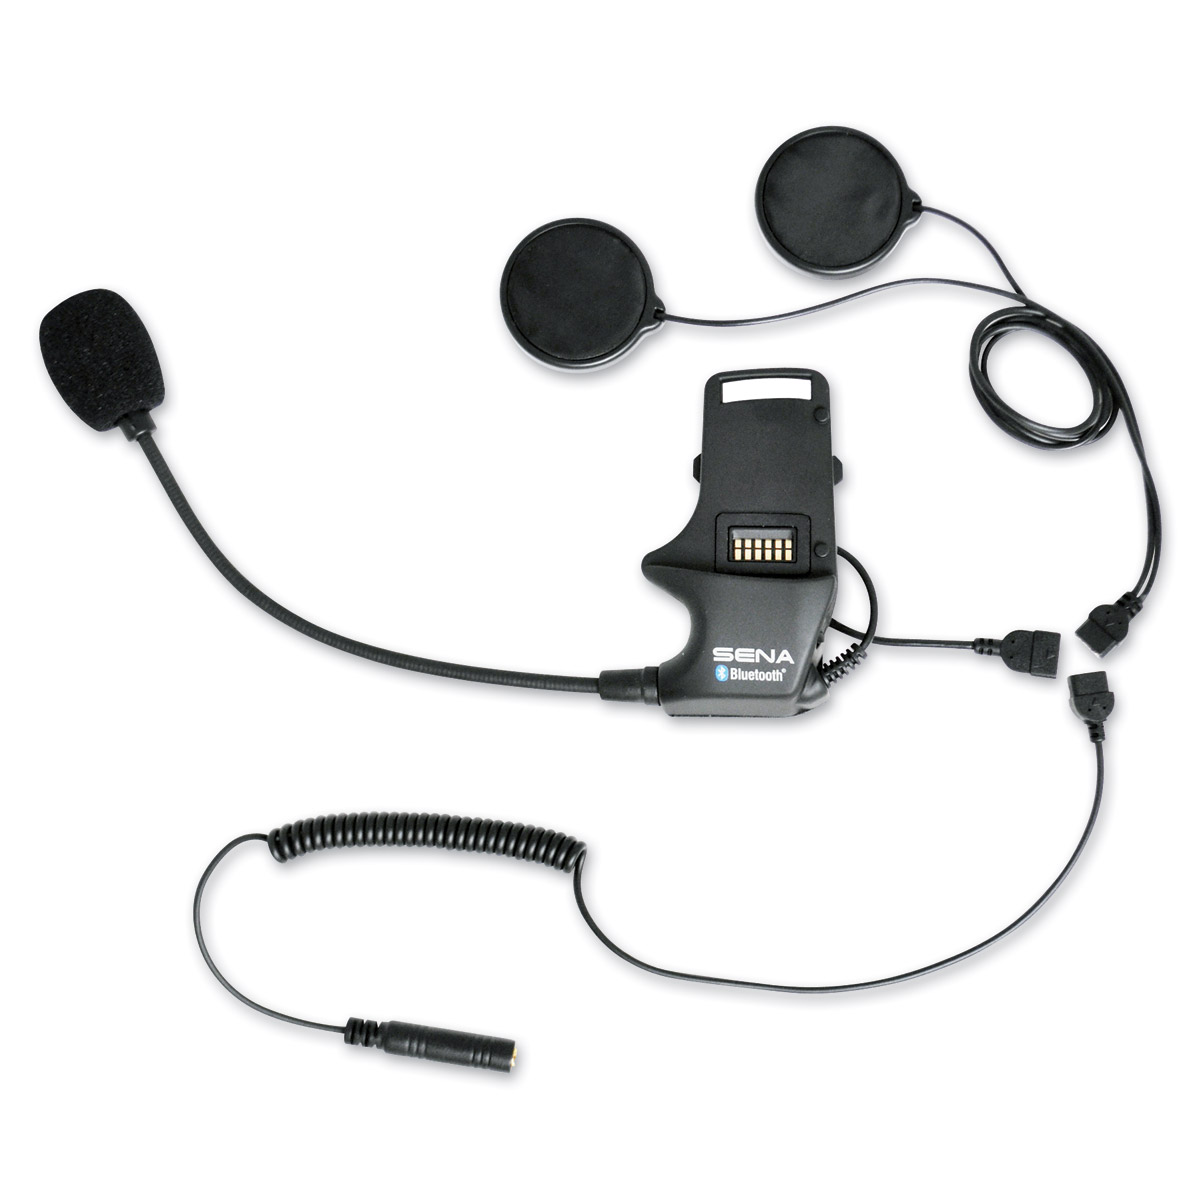 Sena Technologies SMH10 Helmet Clamp Kit for Speakers and Earbuds